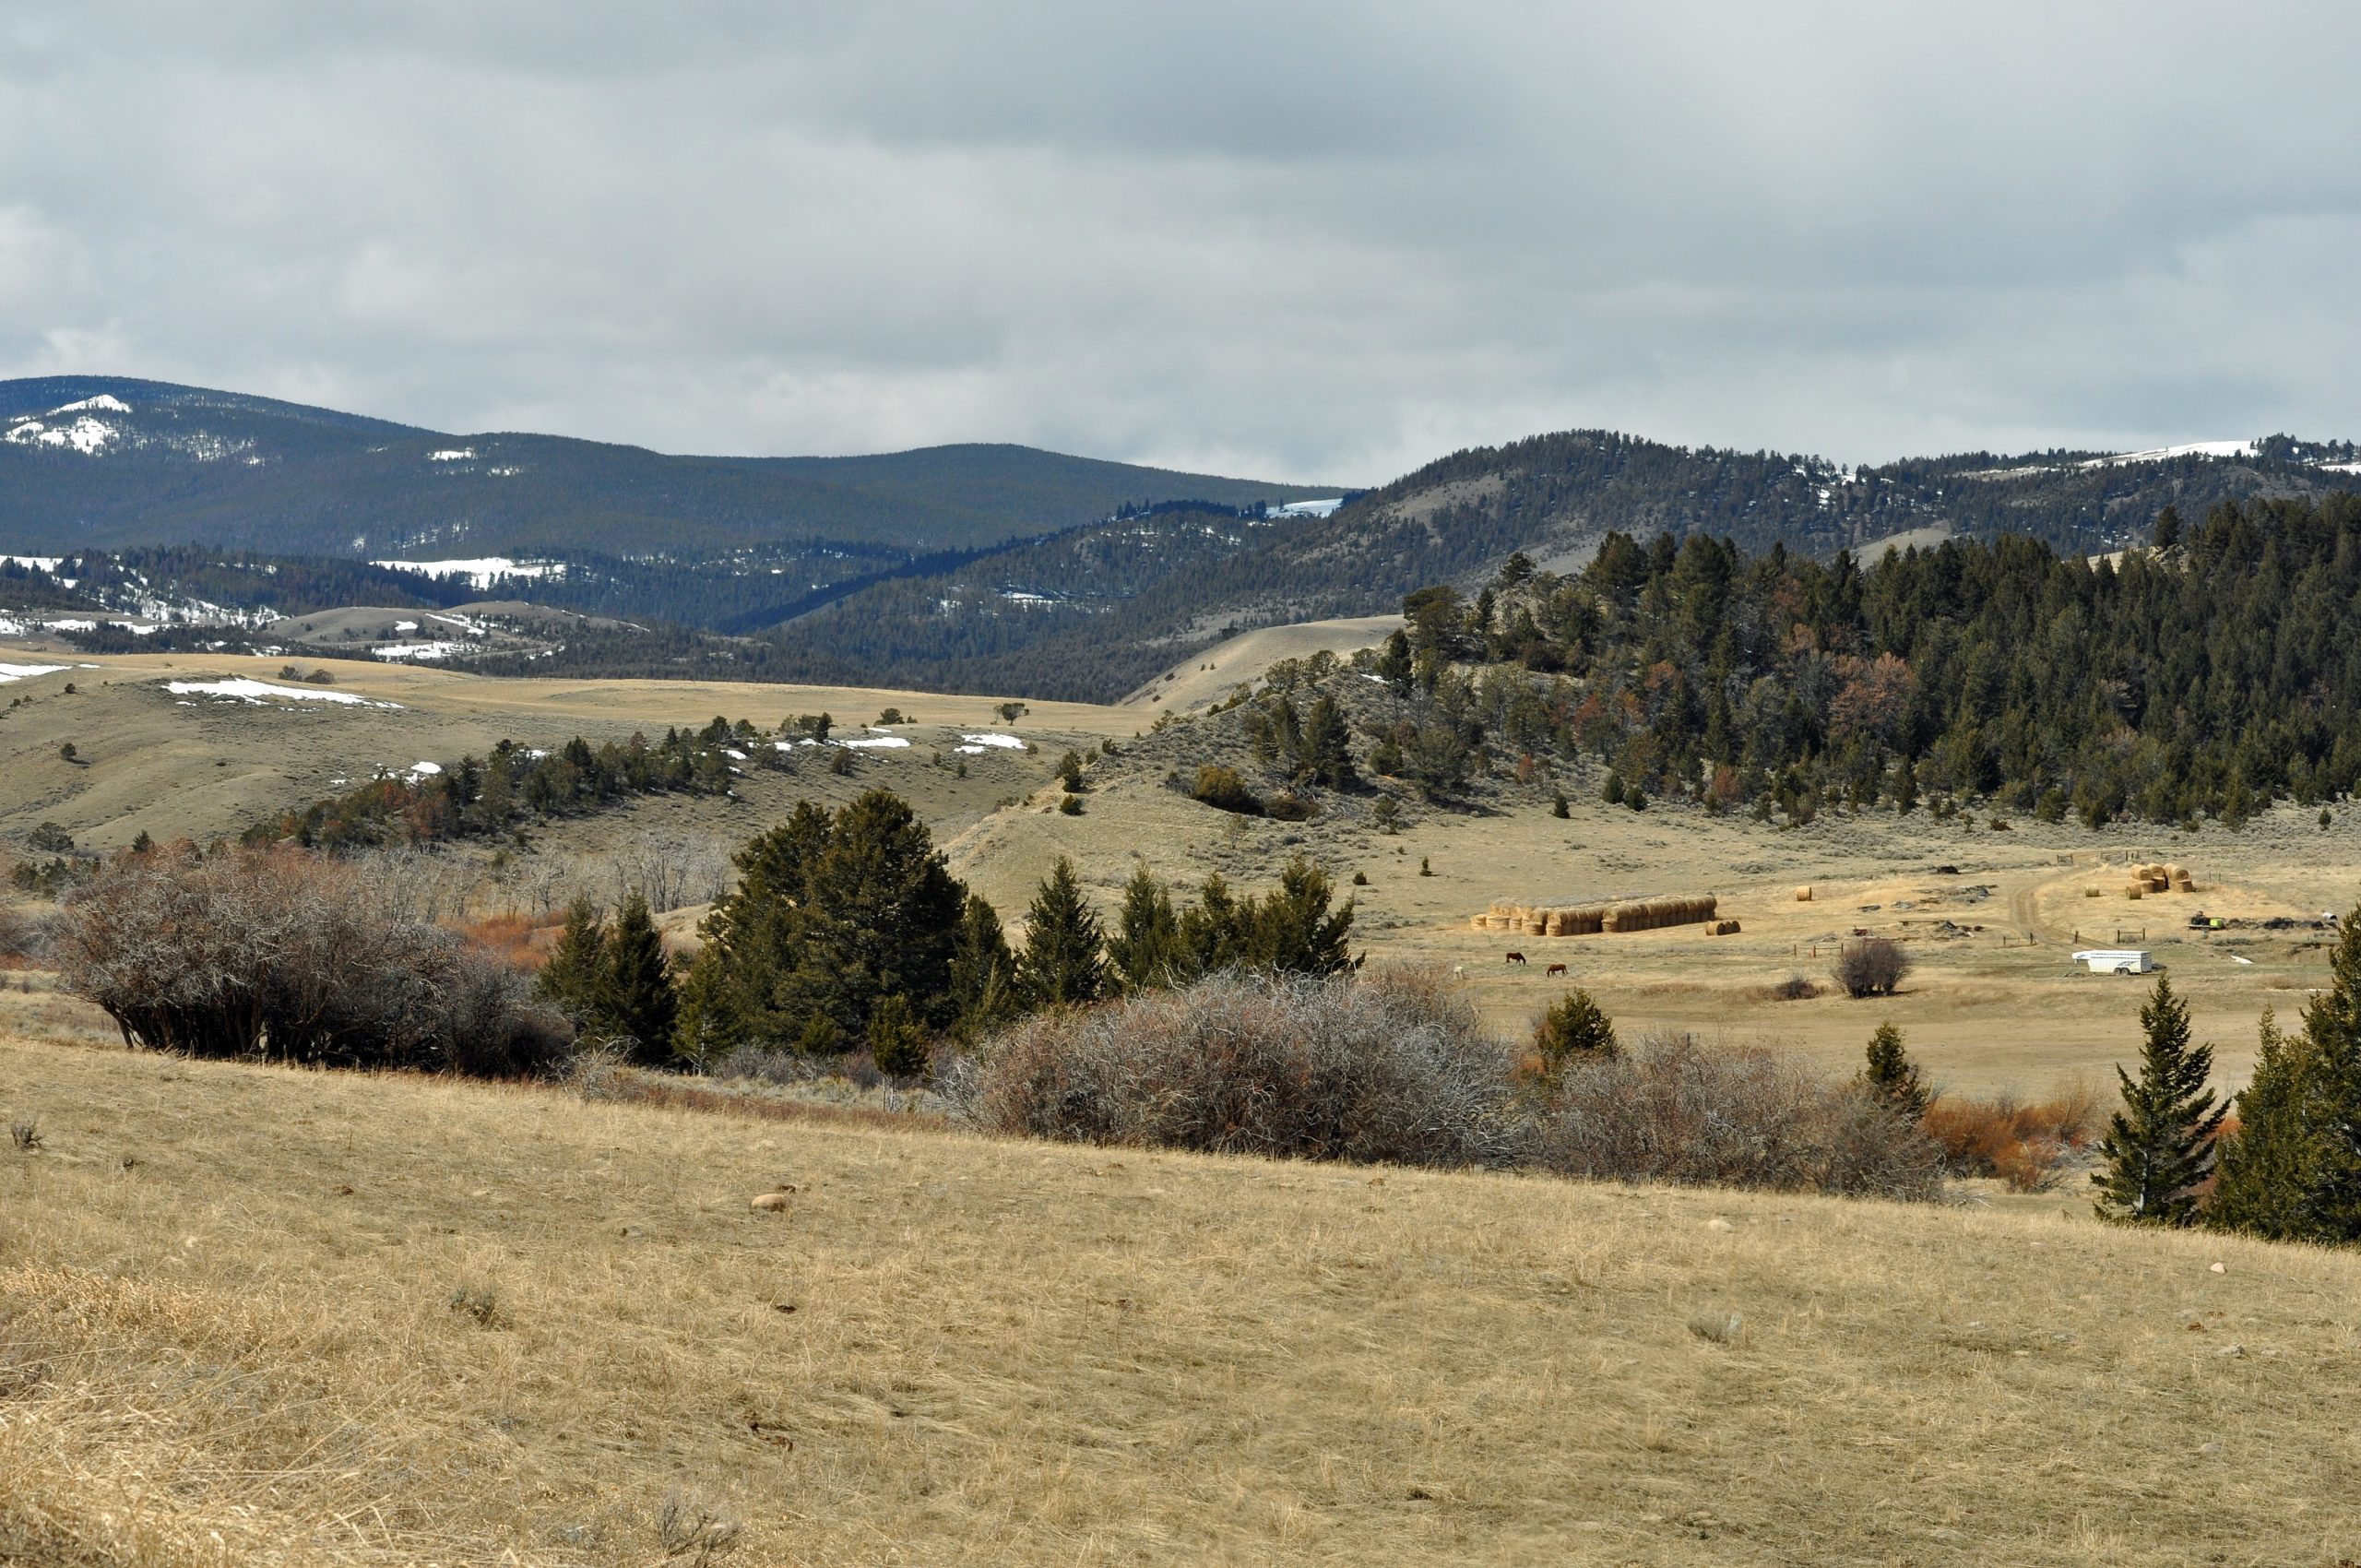 Conservation groups try to keep Castle Mountains pristine